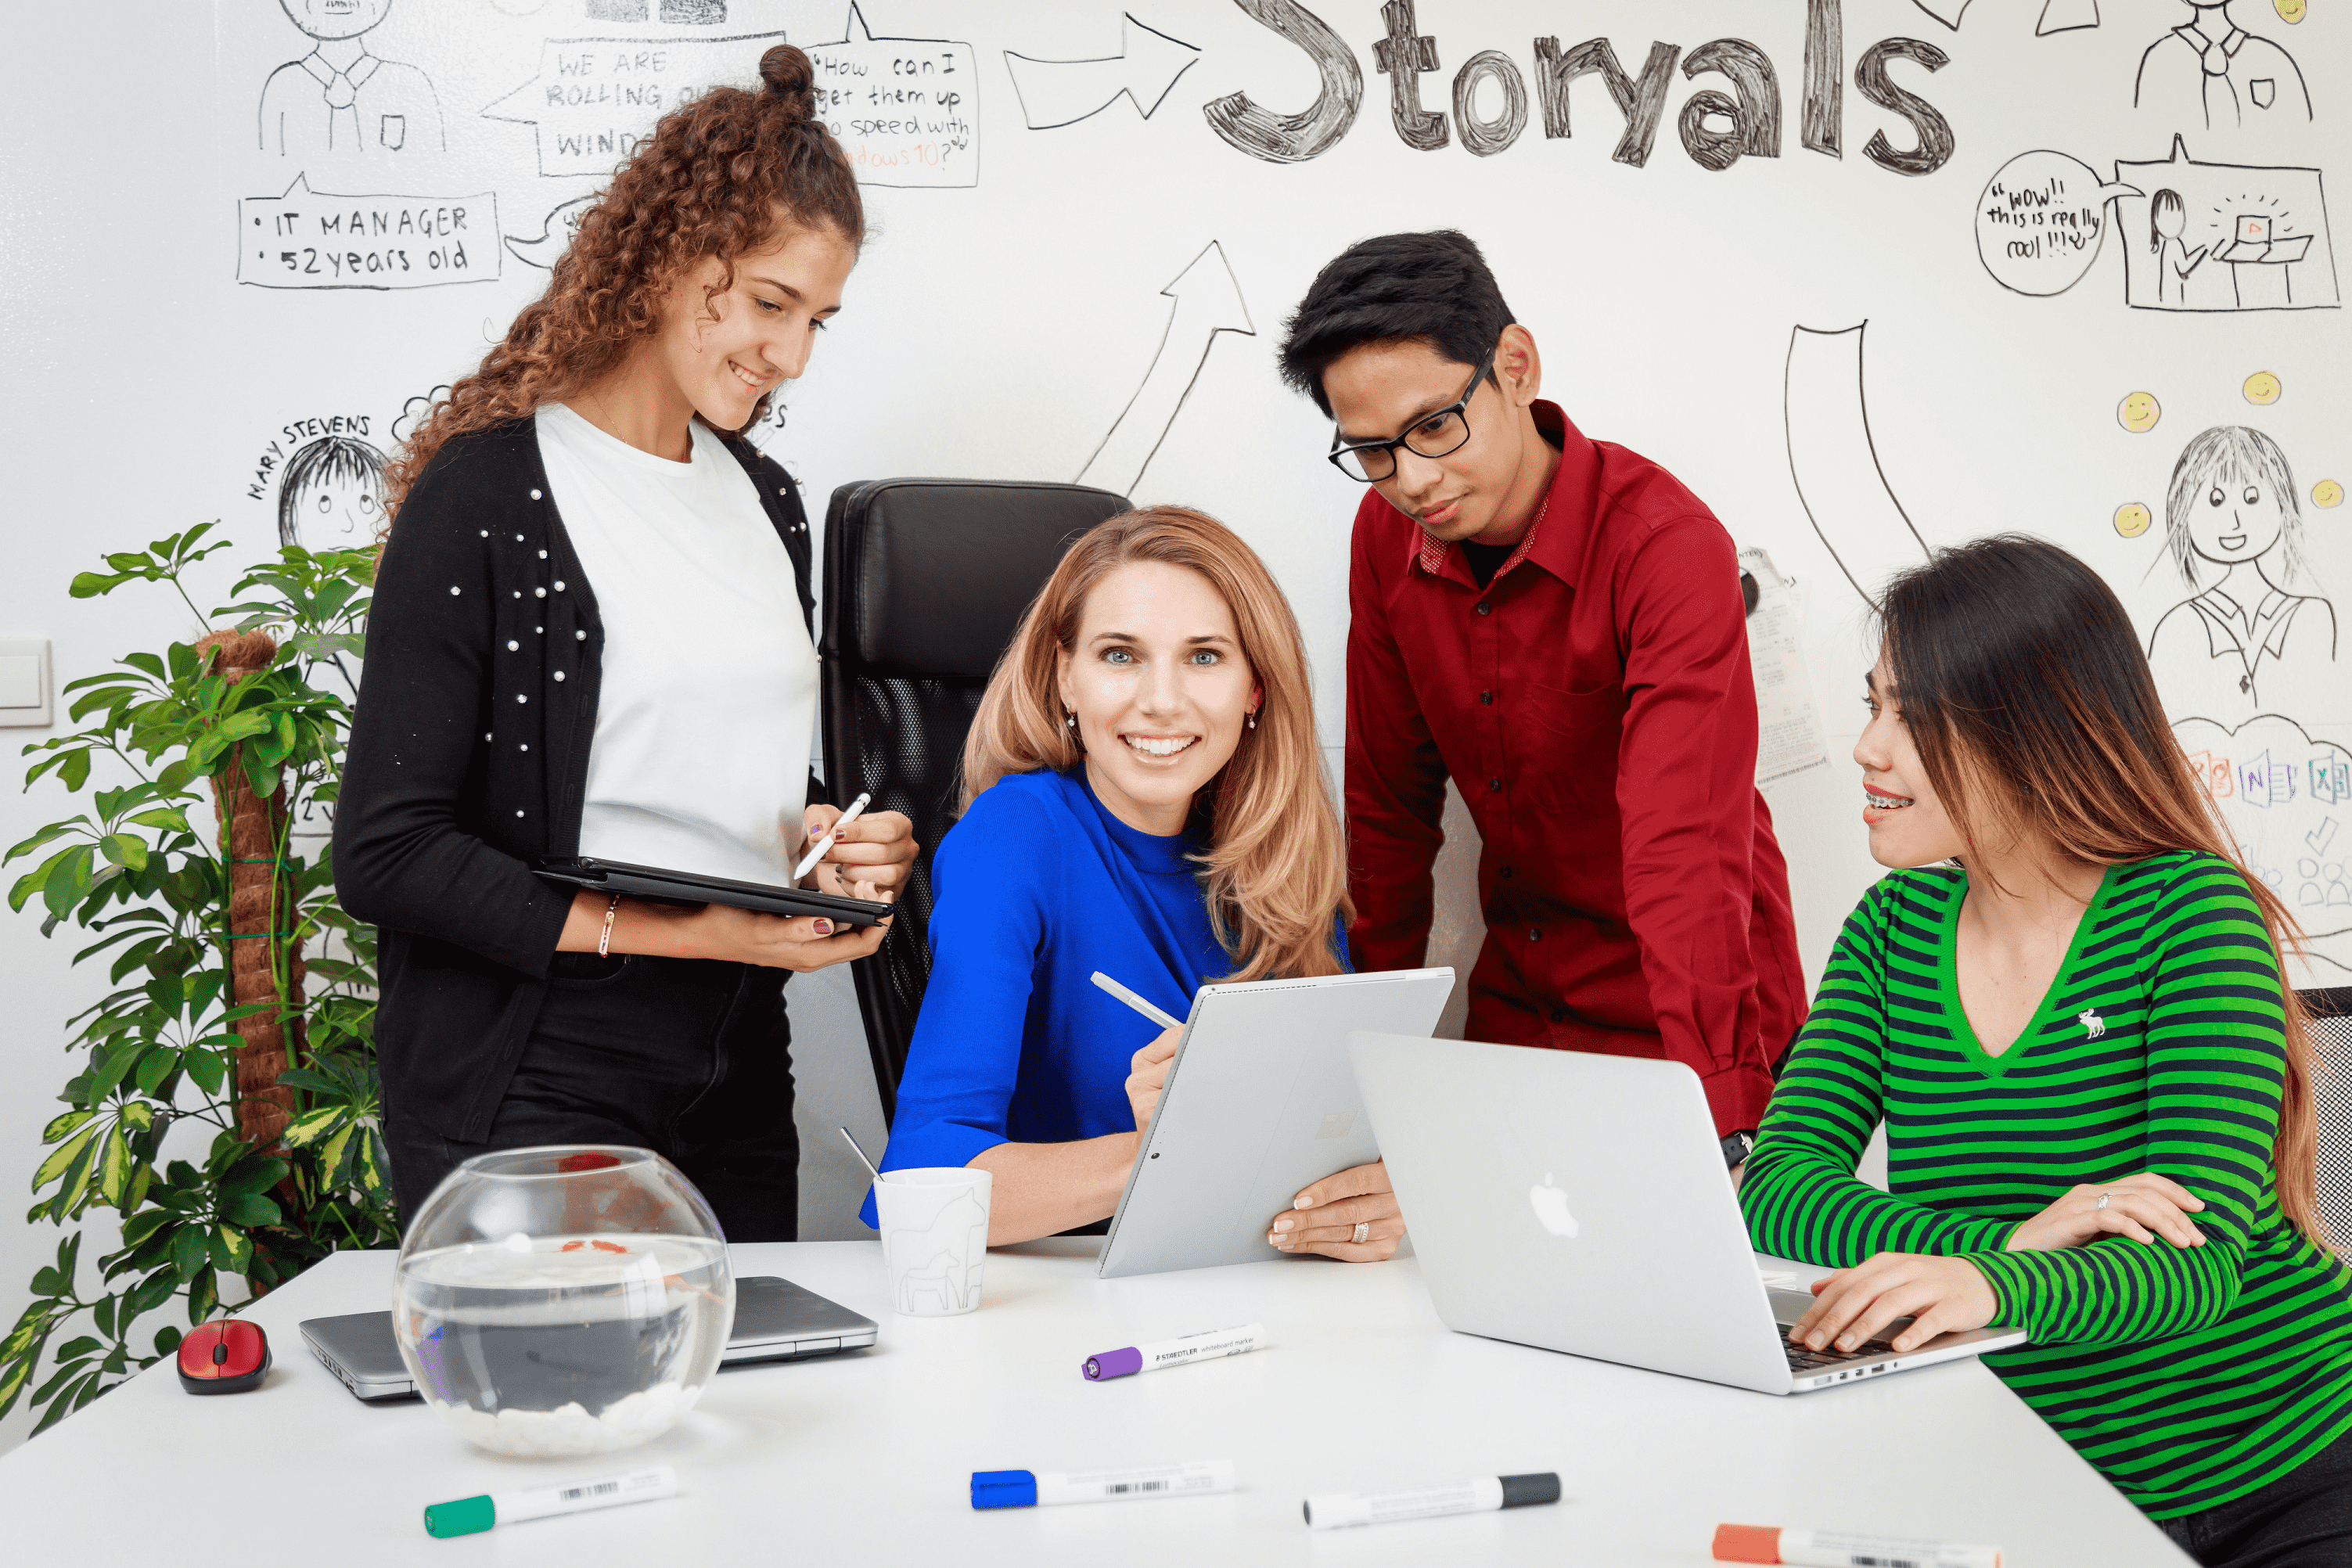 storyals-transforms-their-business-model-and-releases-two-new-products-in-three-months